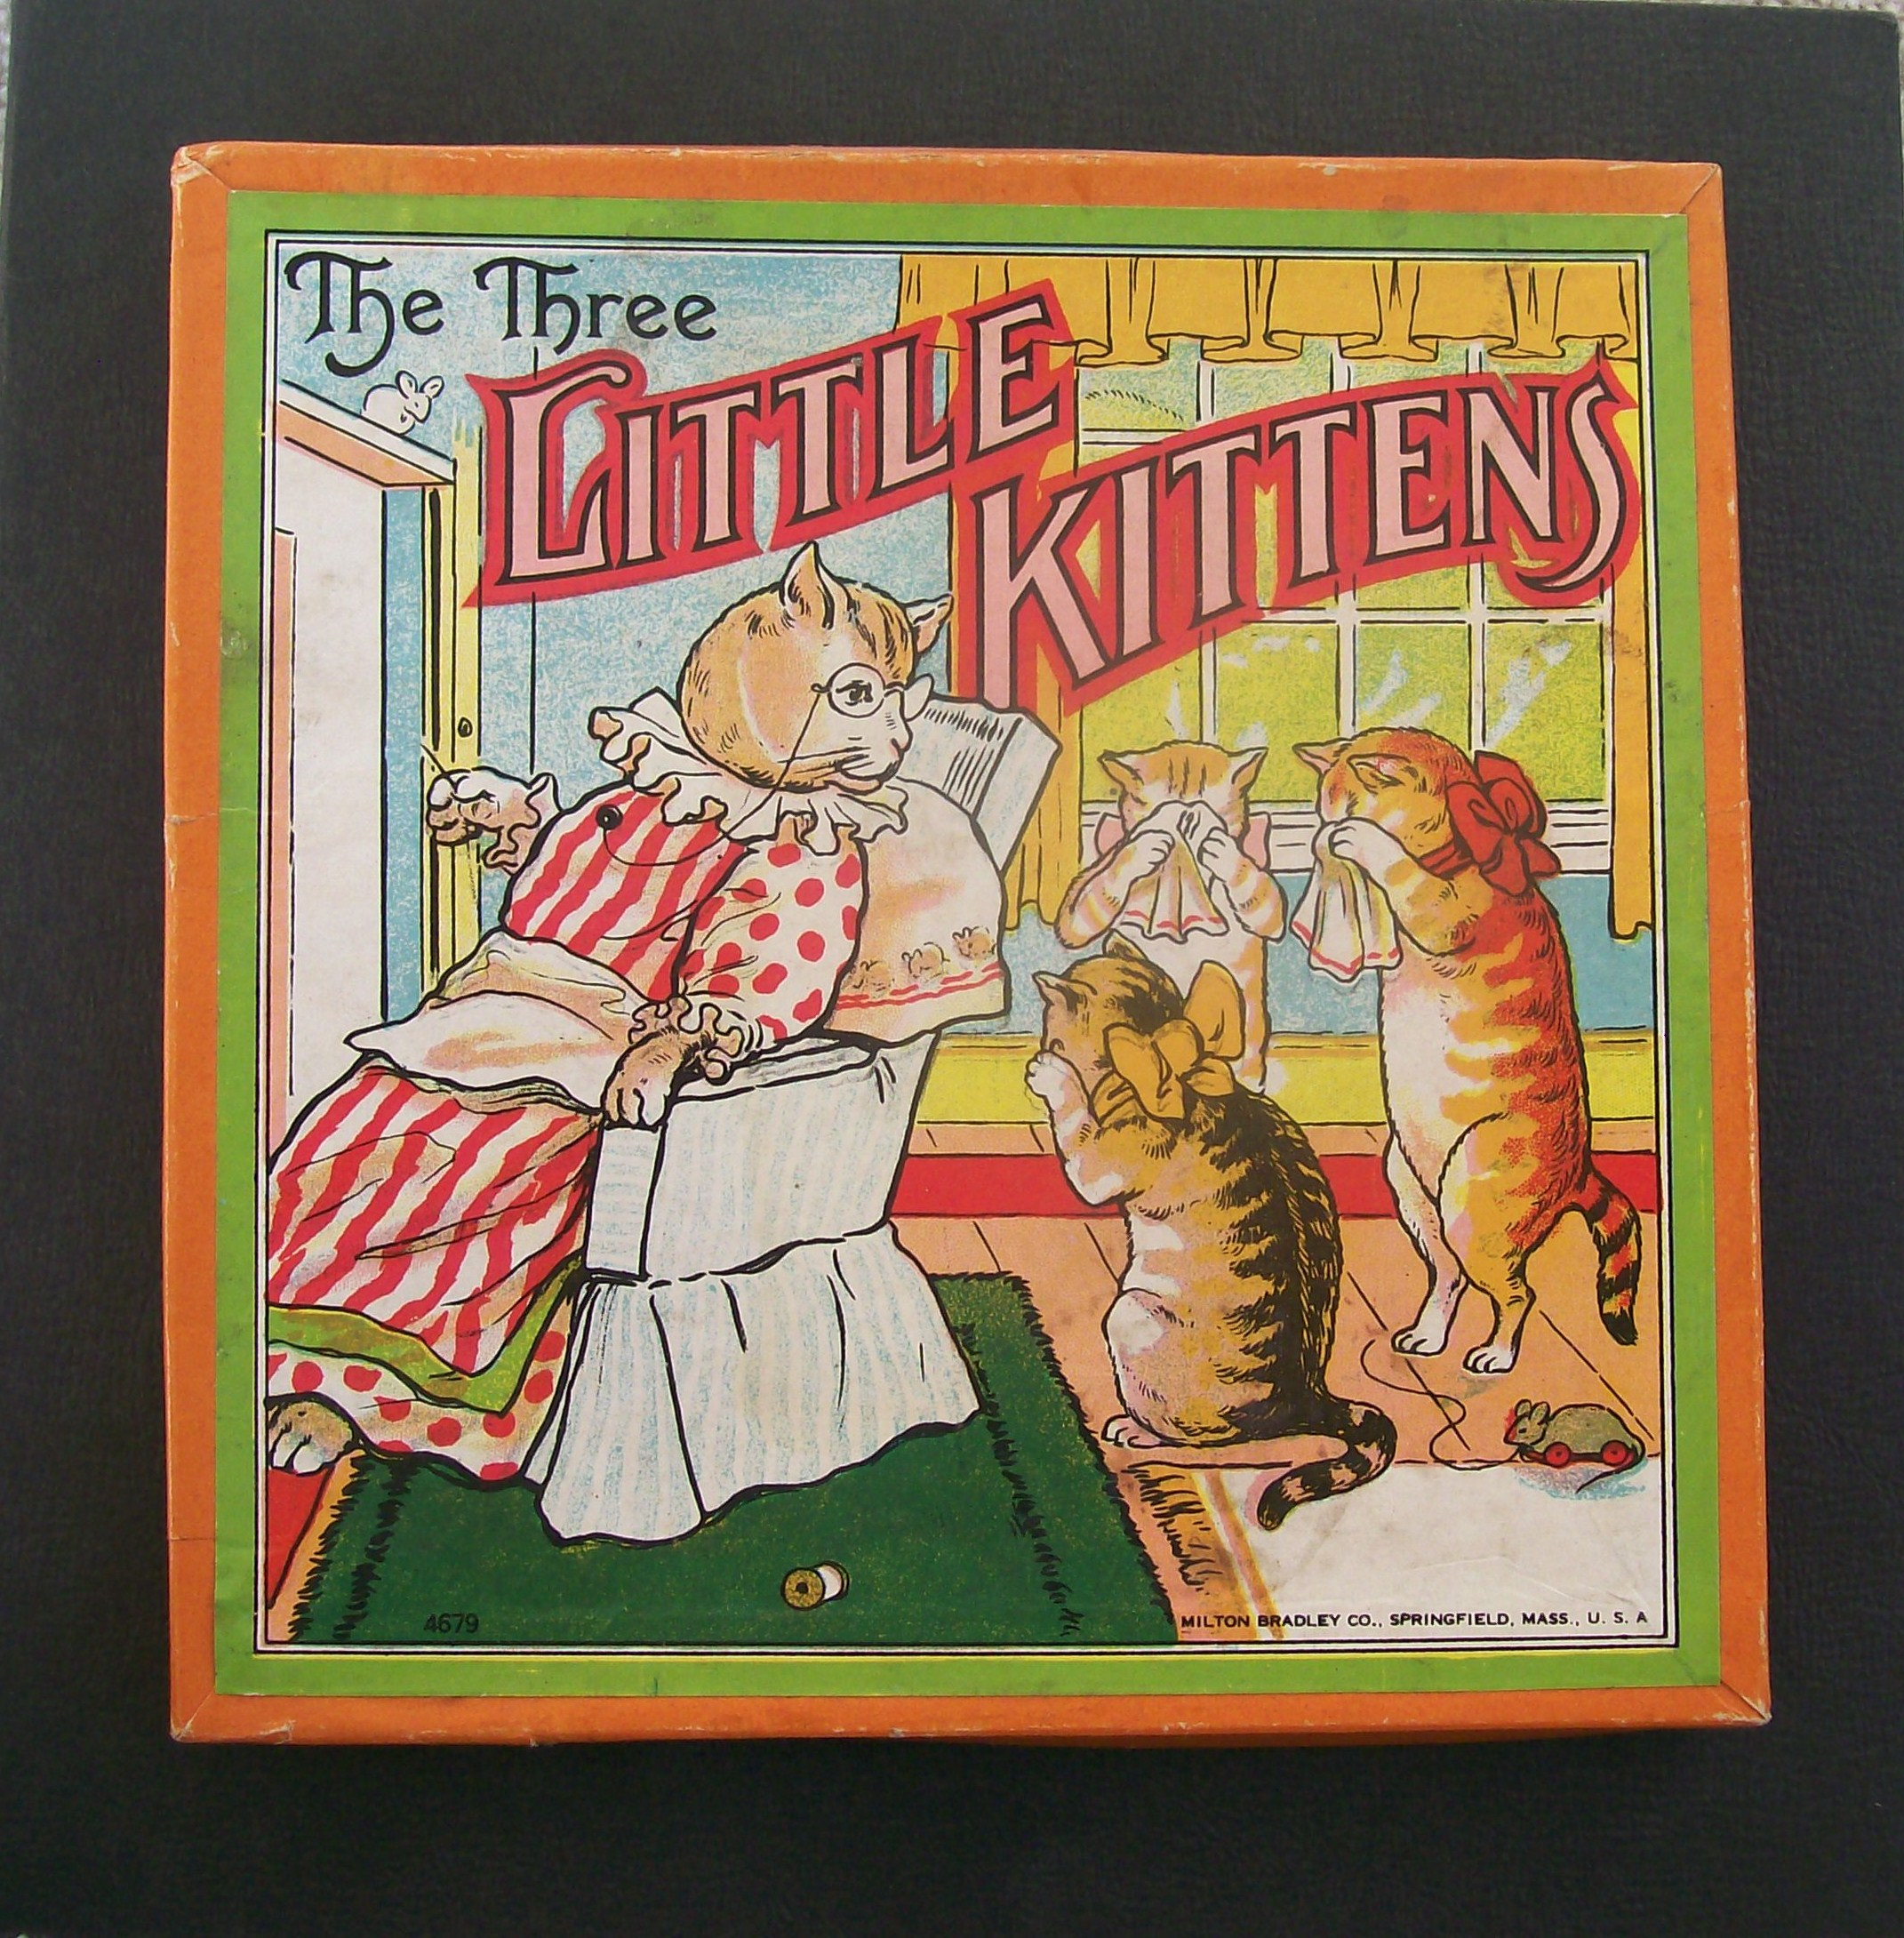 Old Milton Bradley Board Game the three little kittens